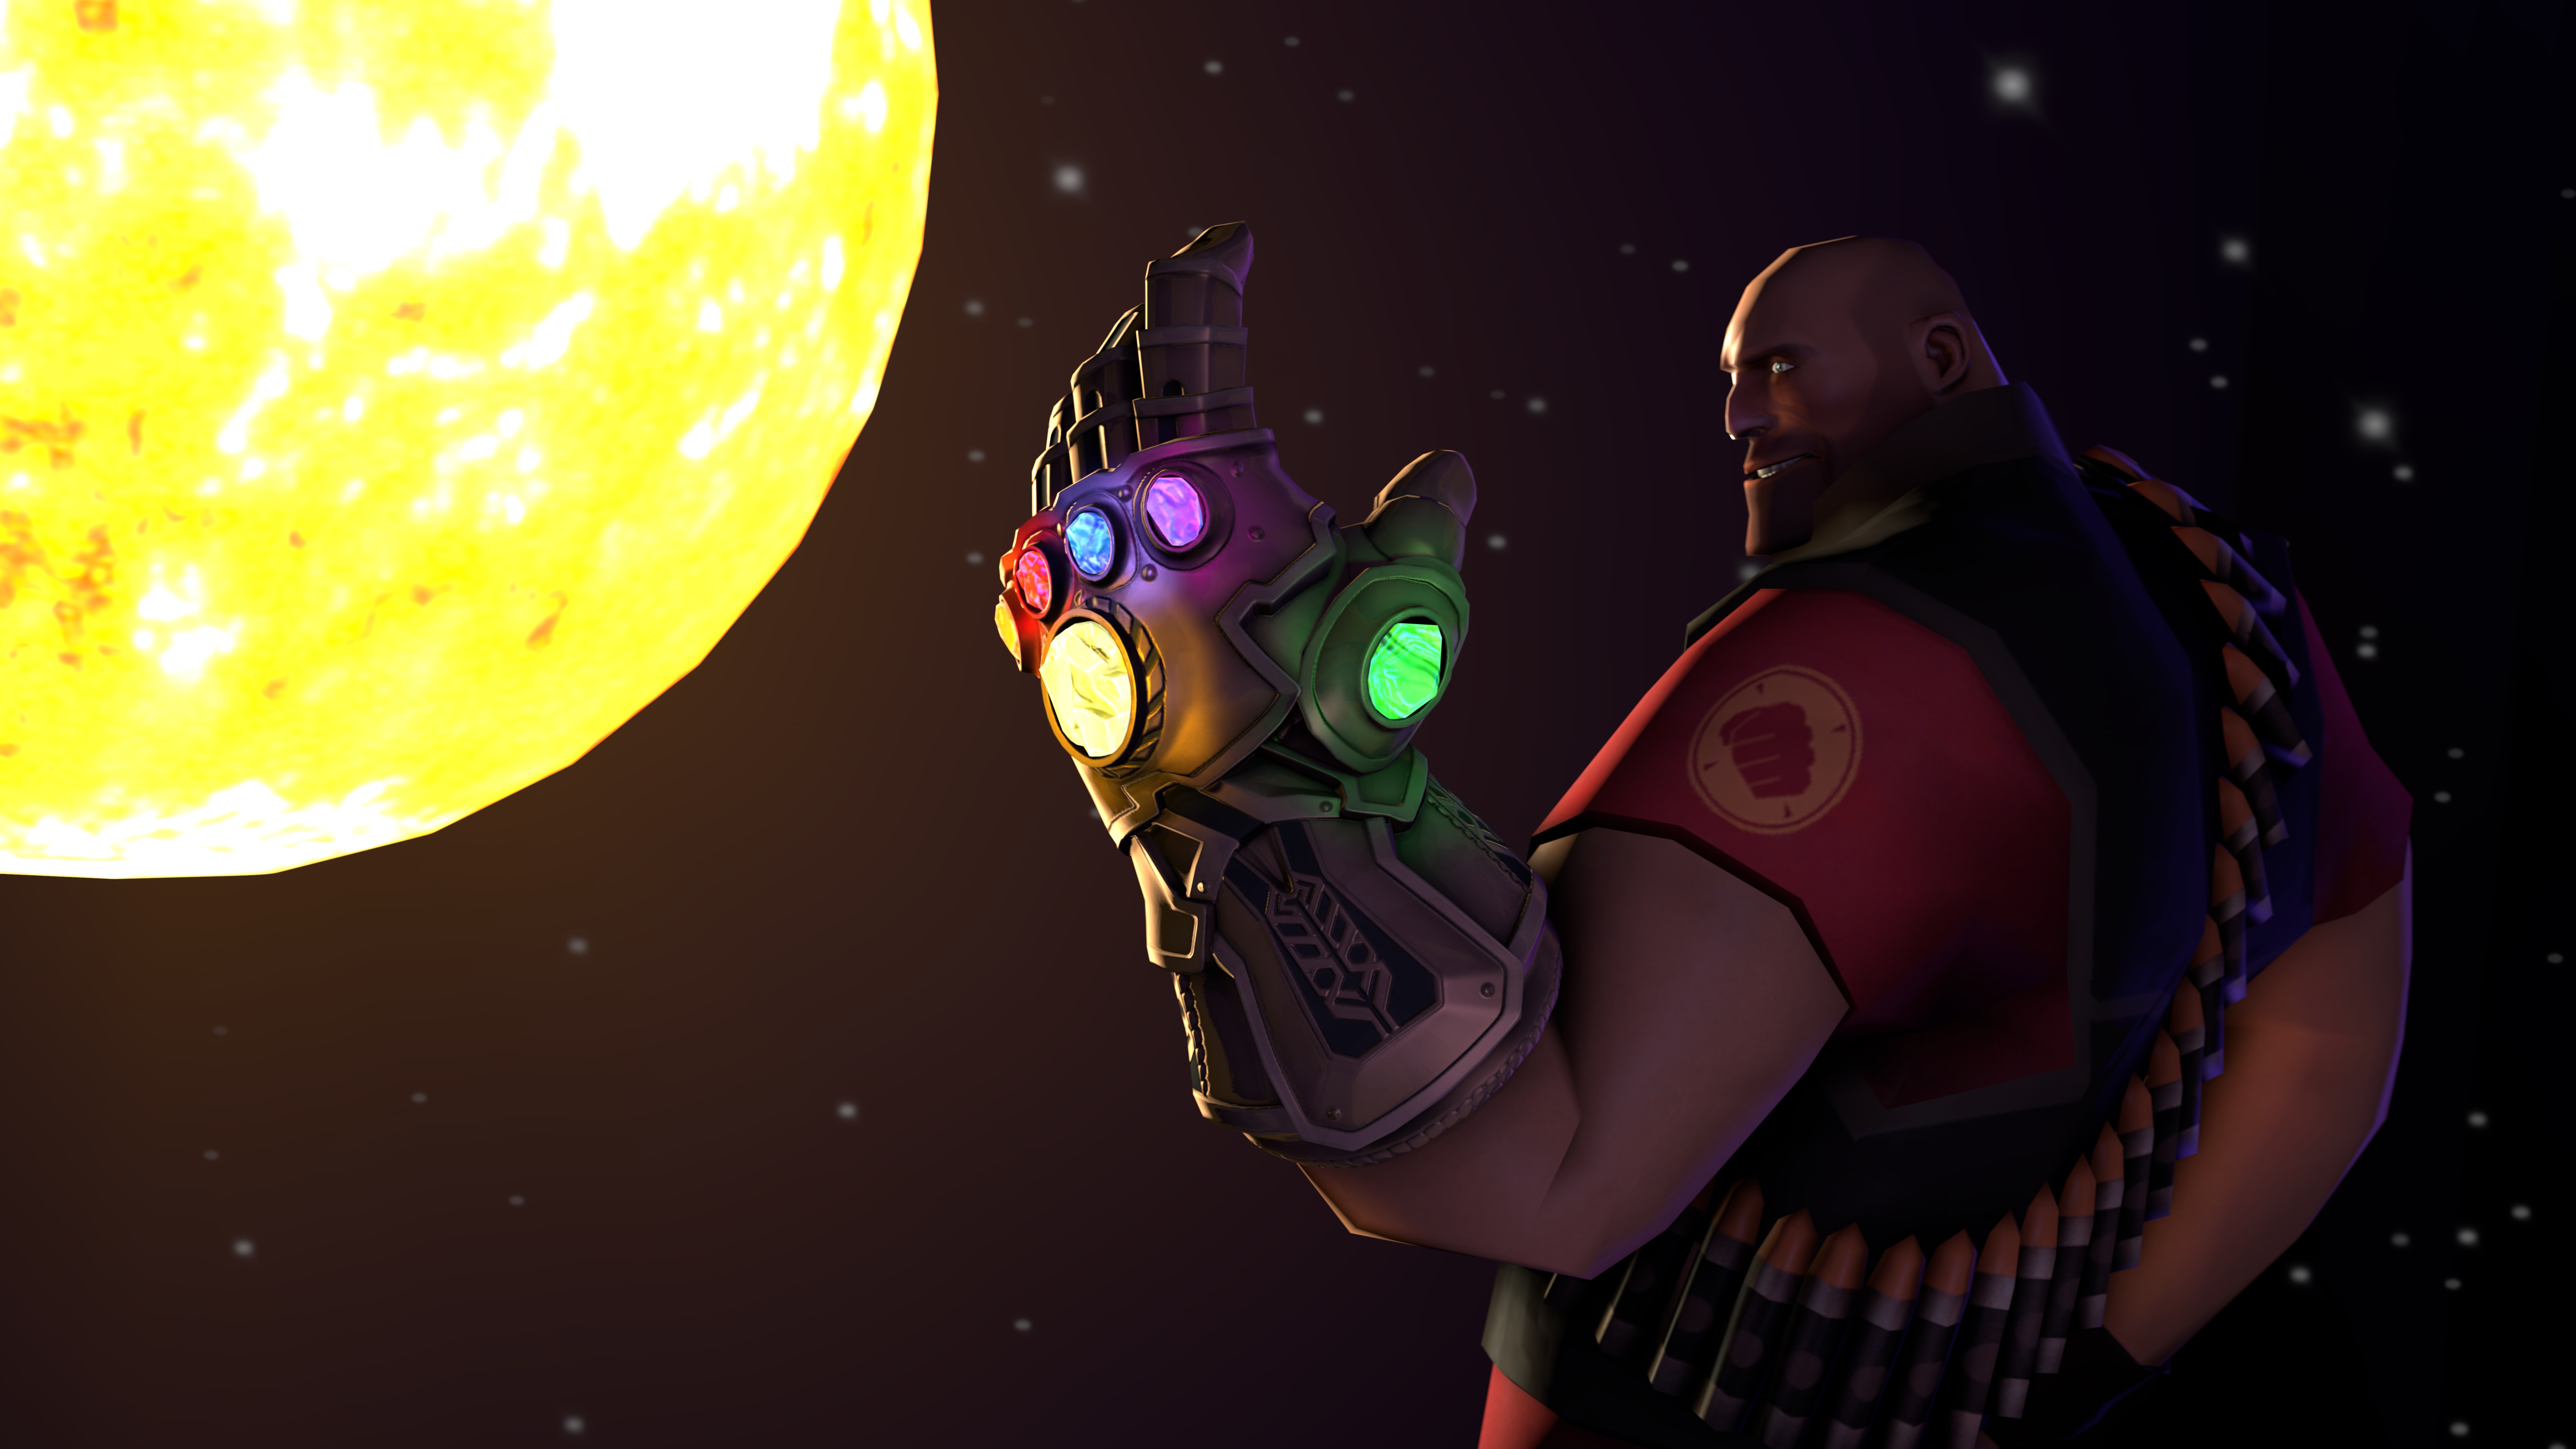 Thanos Infinity Gauntlet Fortnite Artwork Hd Games 4k Wallpapers Images Backgrounds Photos And Pictures